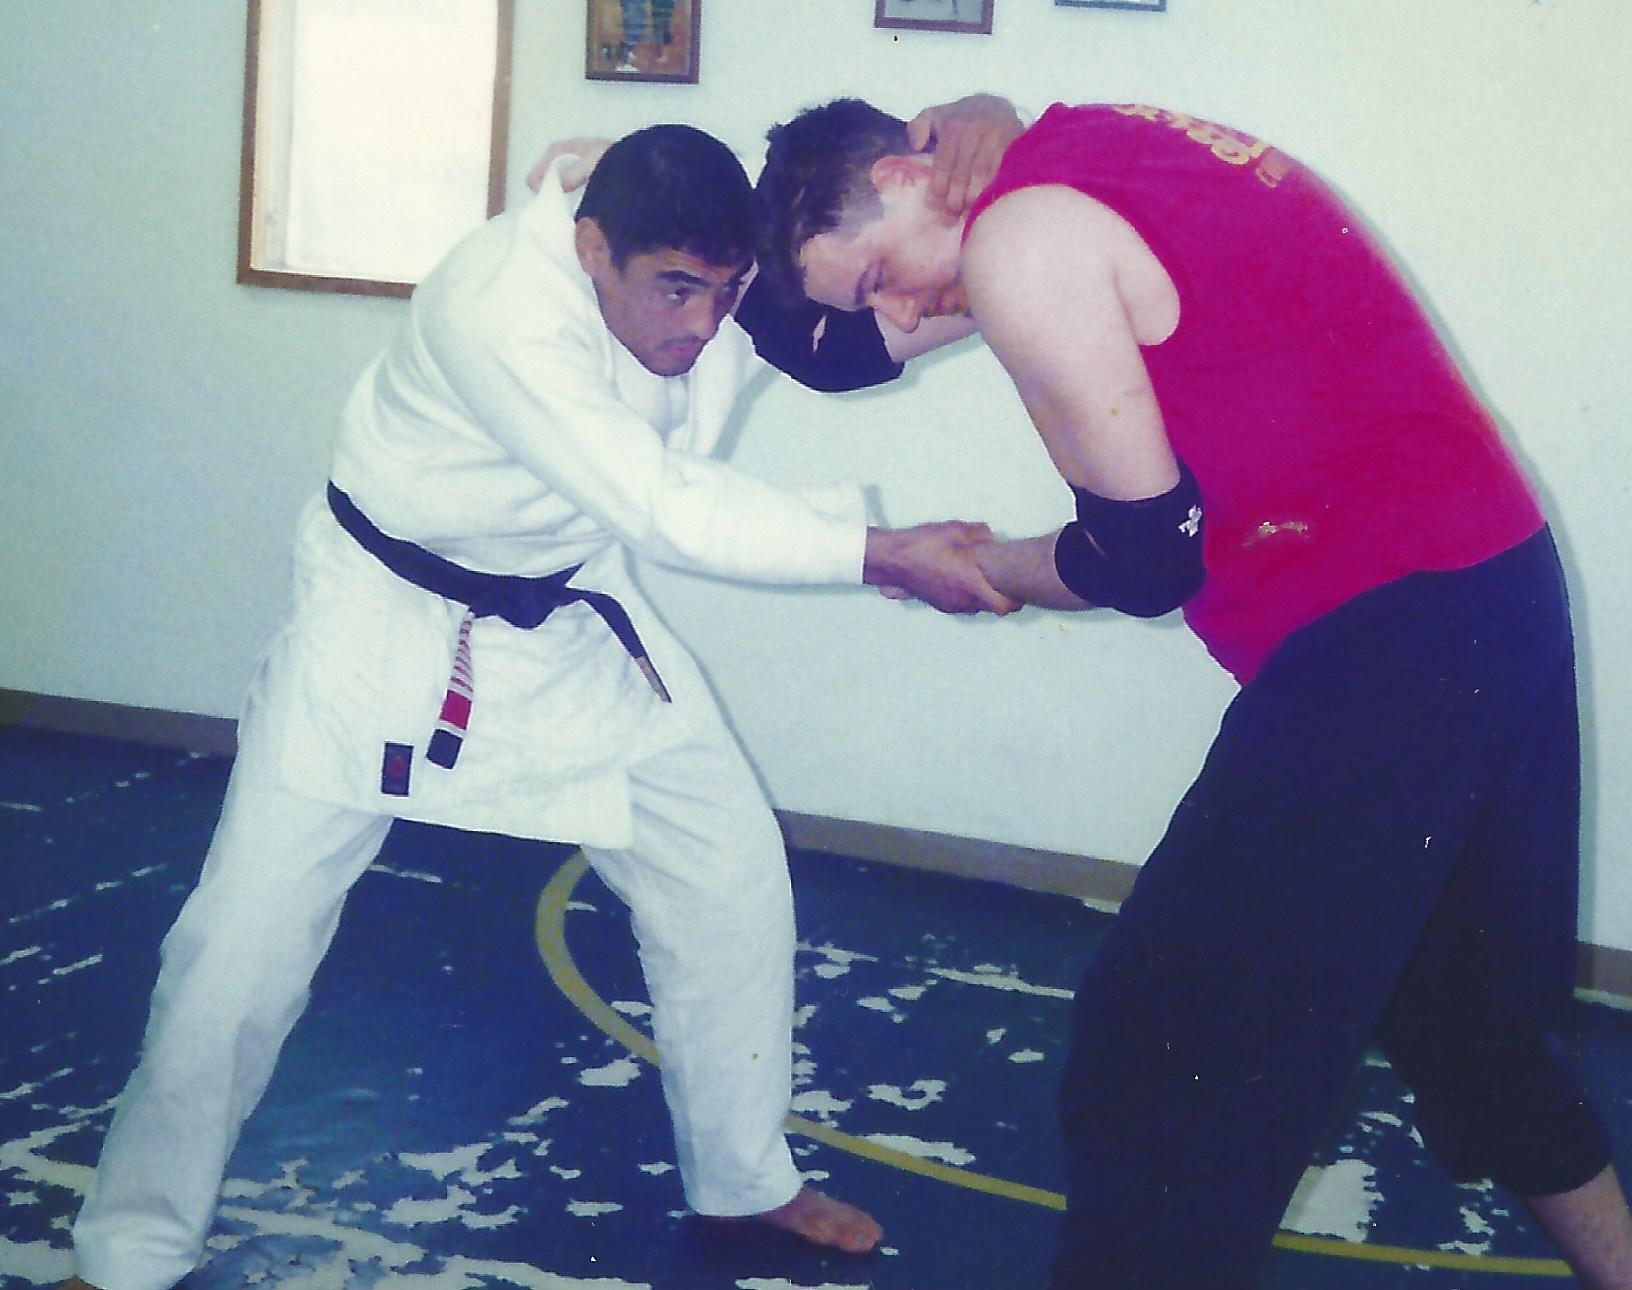 SBG Founder Matt Thornton, with Rickson Gracie – more than 22 years ago